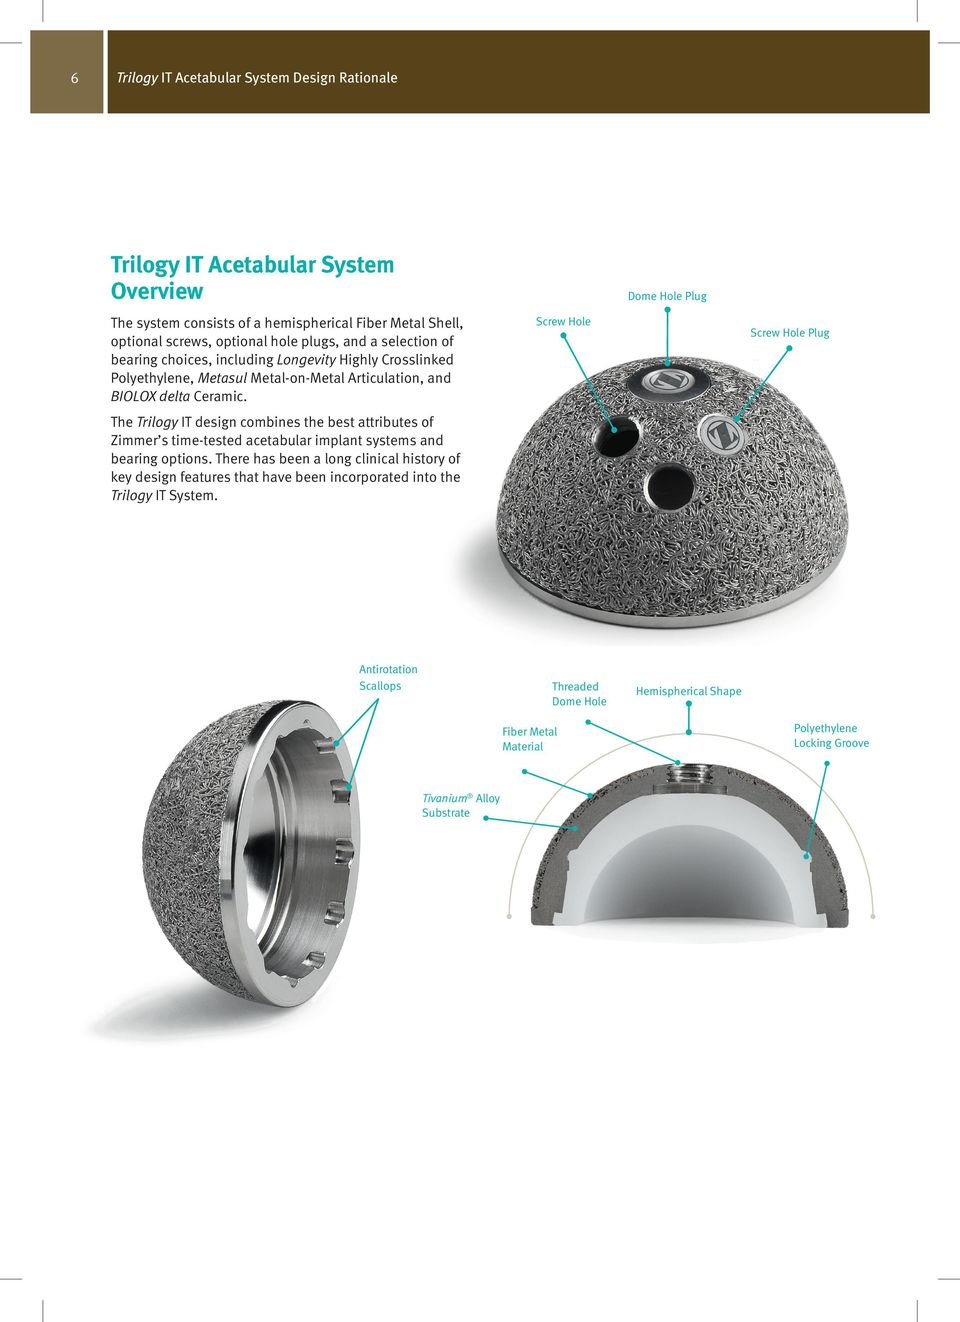 Screw Hole Screw Hole Plug The Trilogy IT design combines the best attributes of Zimmer s time-tested acetabular implant systems and bearing options.